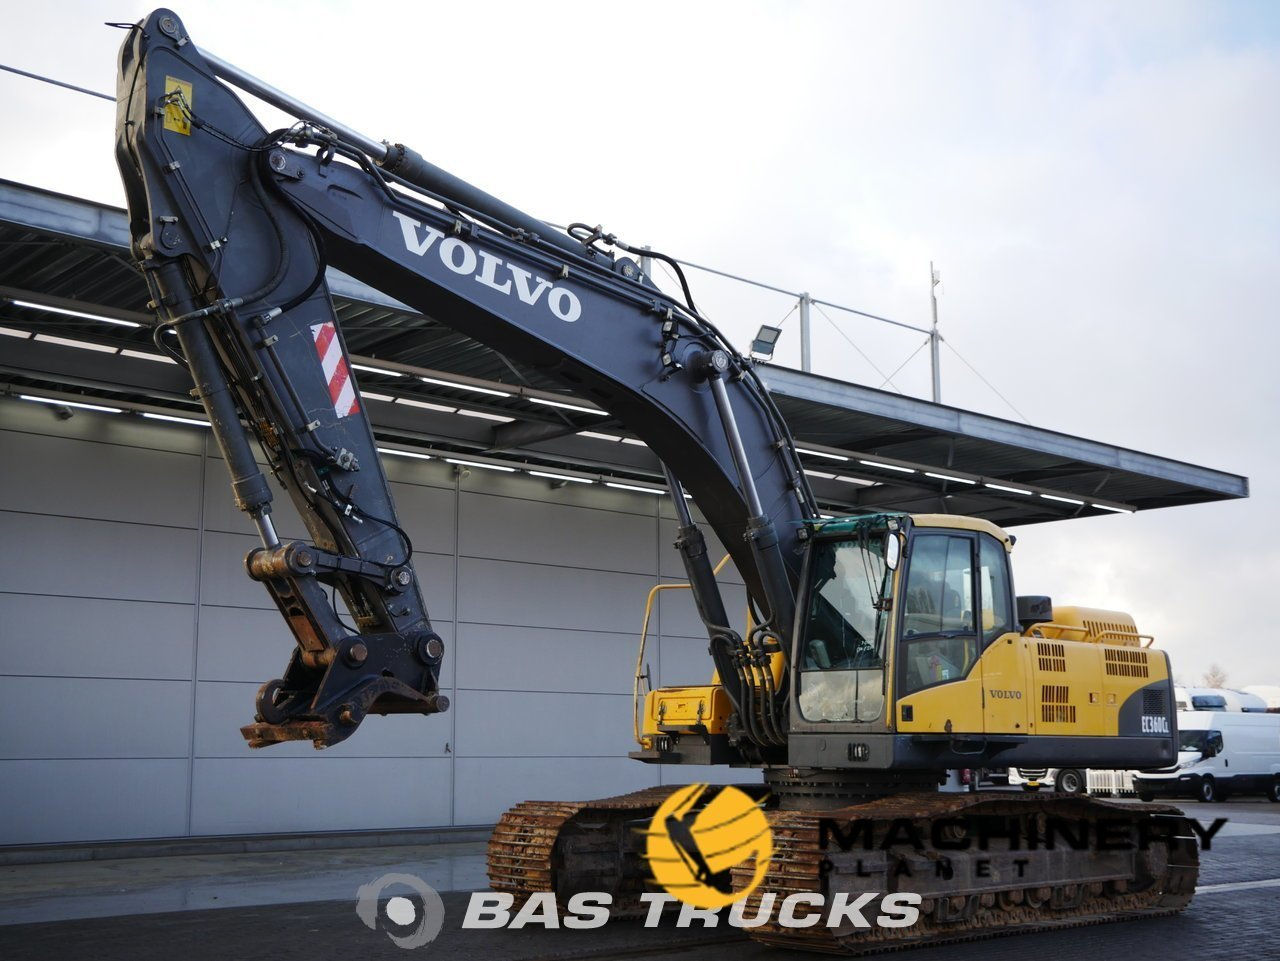 Used-Construction-equipment-Volvo-EC360C-L-Track-2007_144195_1-1554108362842_5ca1cfcacd845-1.jpg